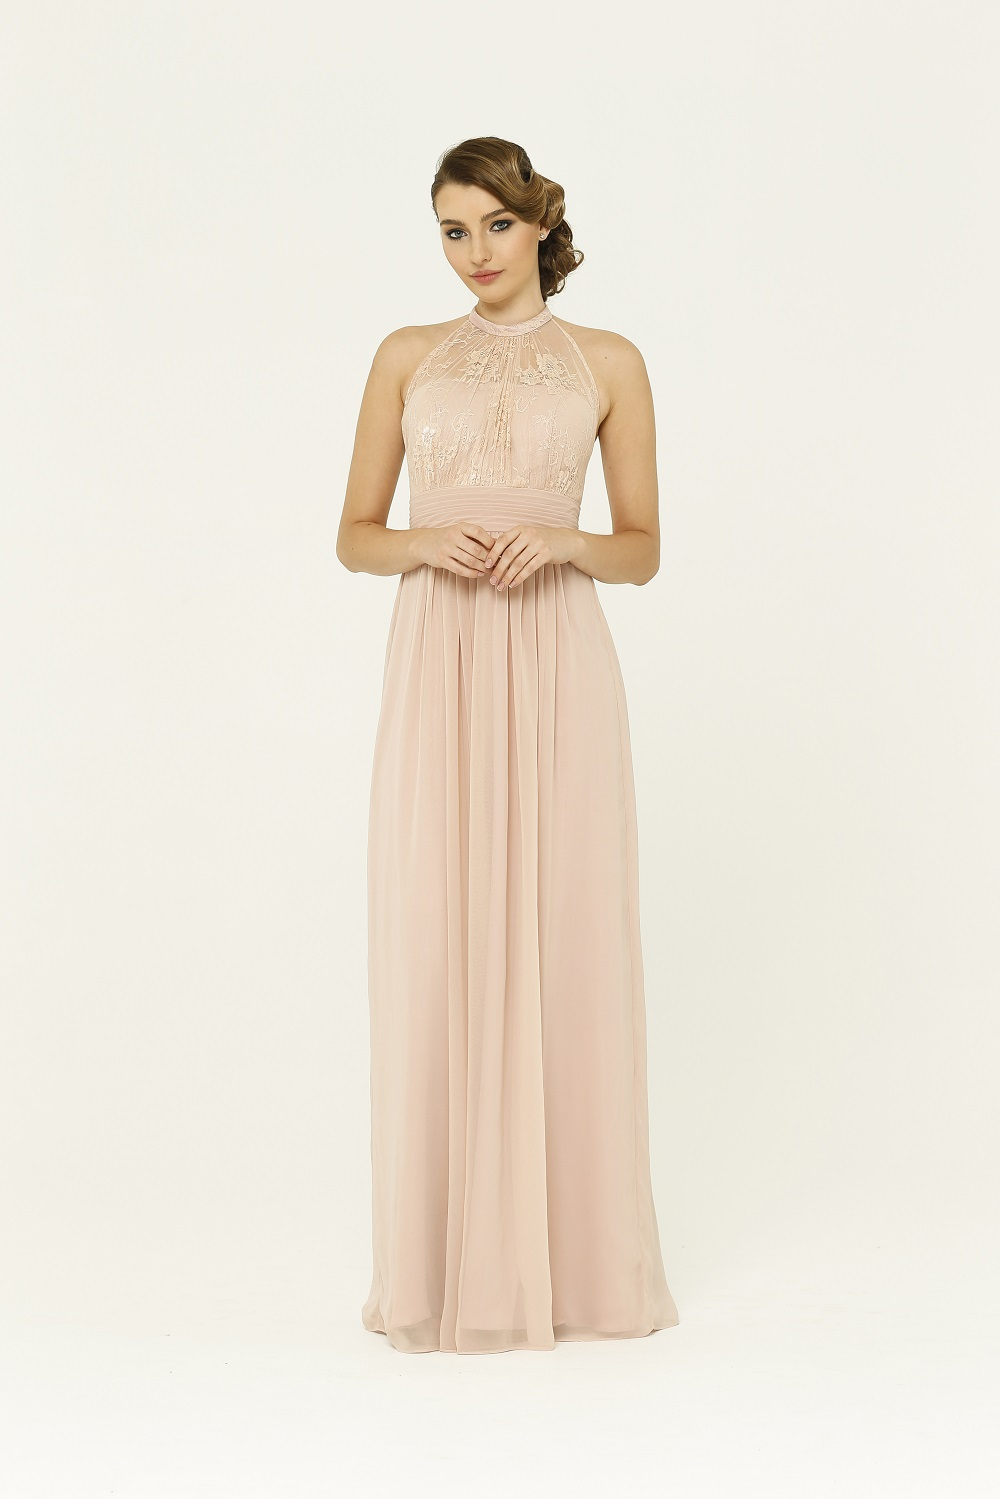 PO33 Harlow Bridesmaids dress - end of dye lot front